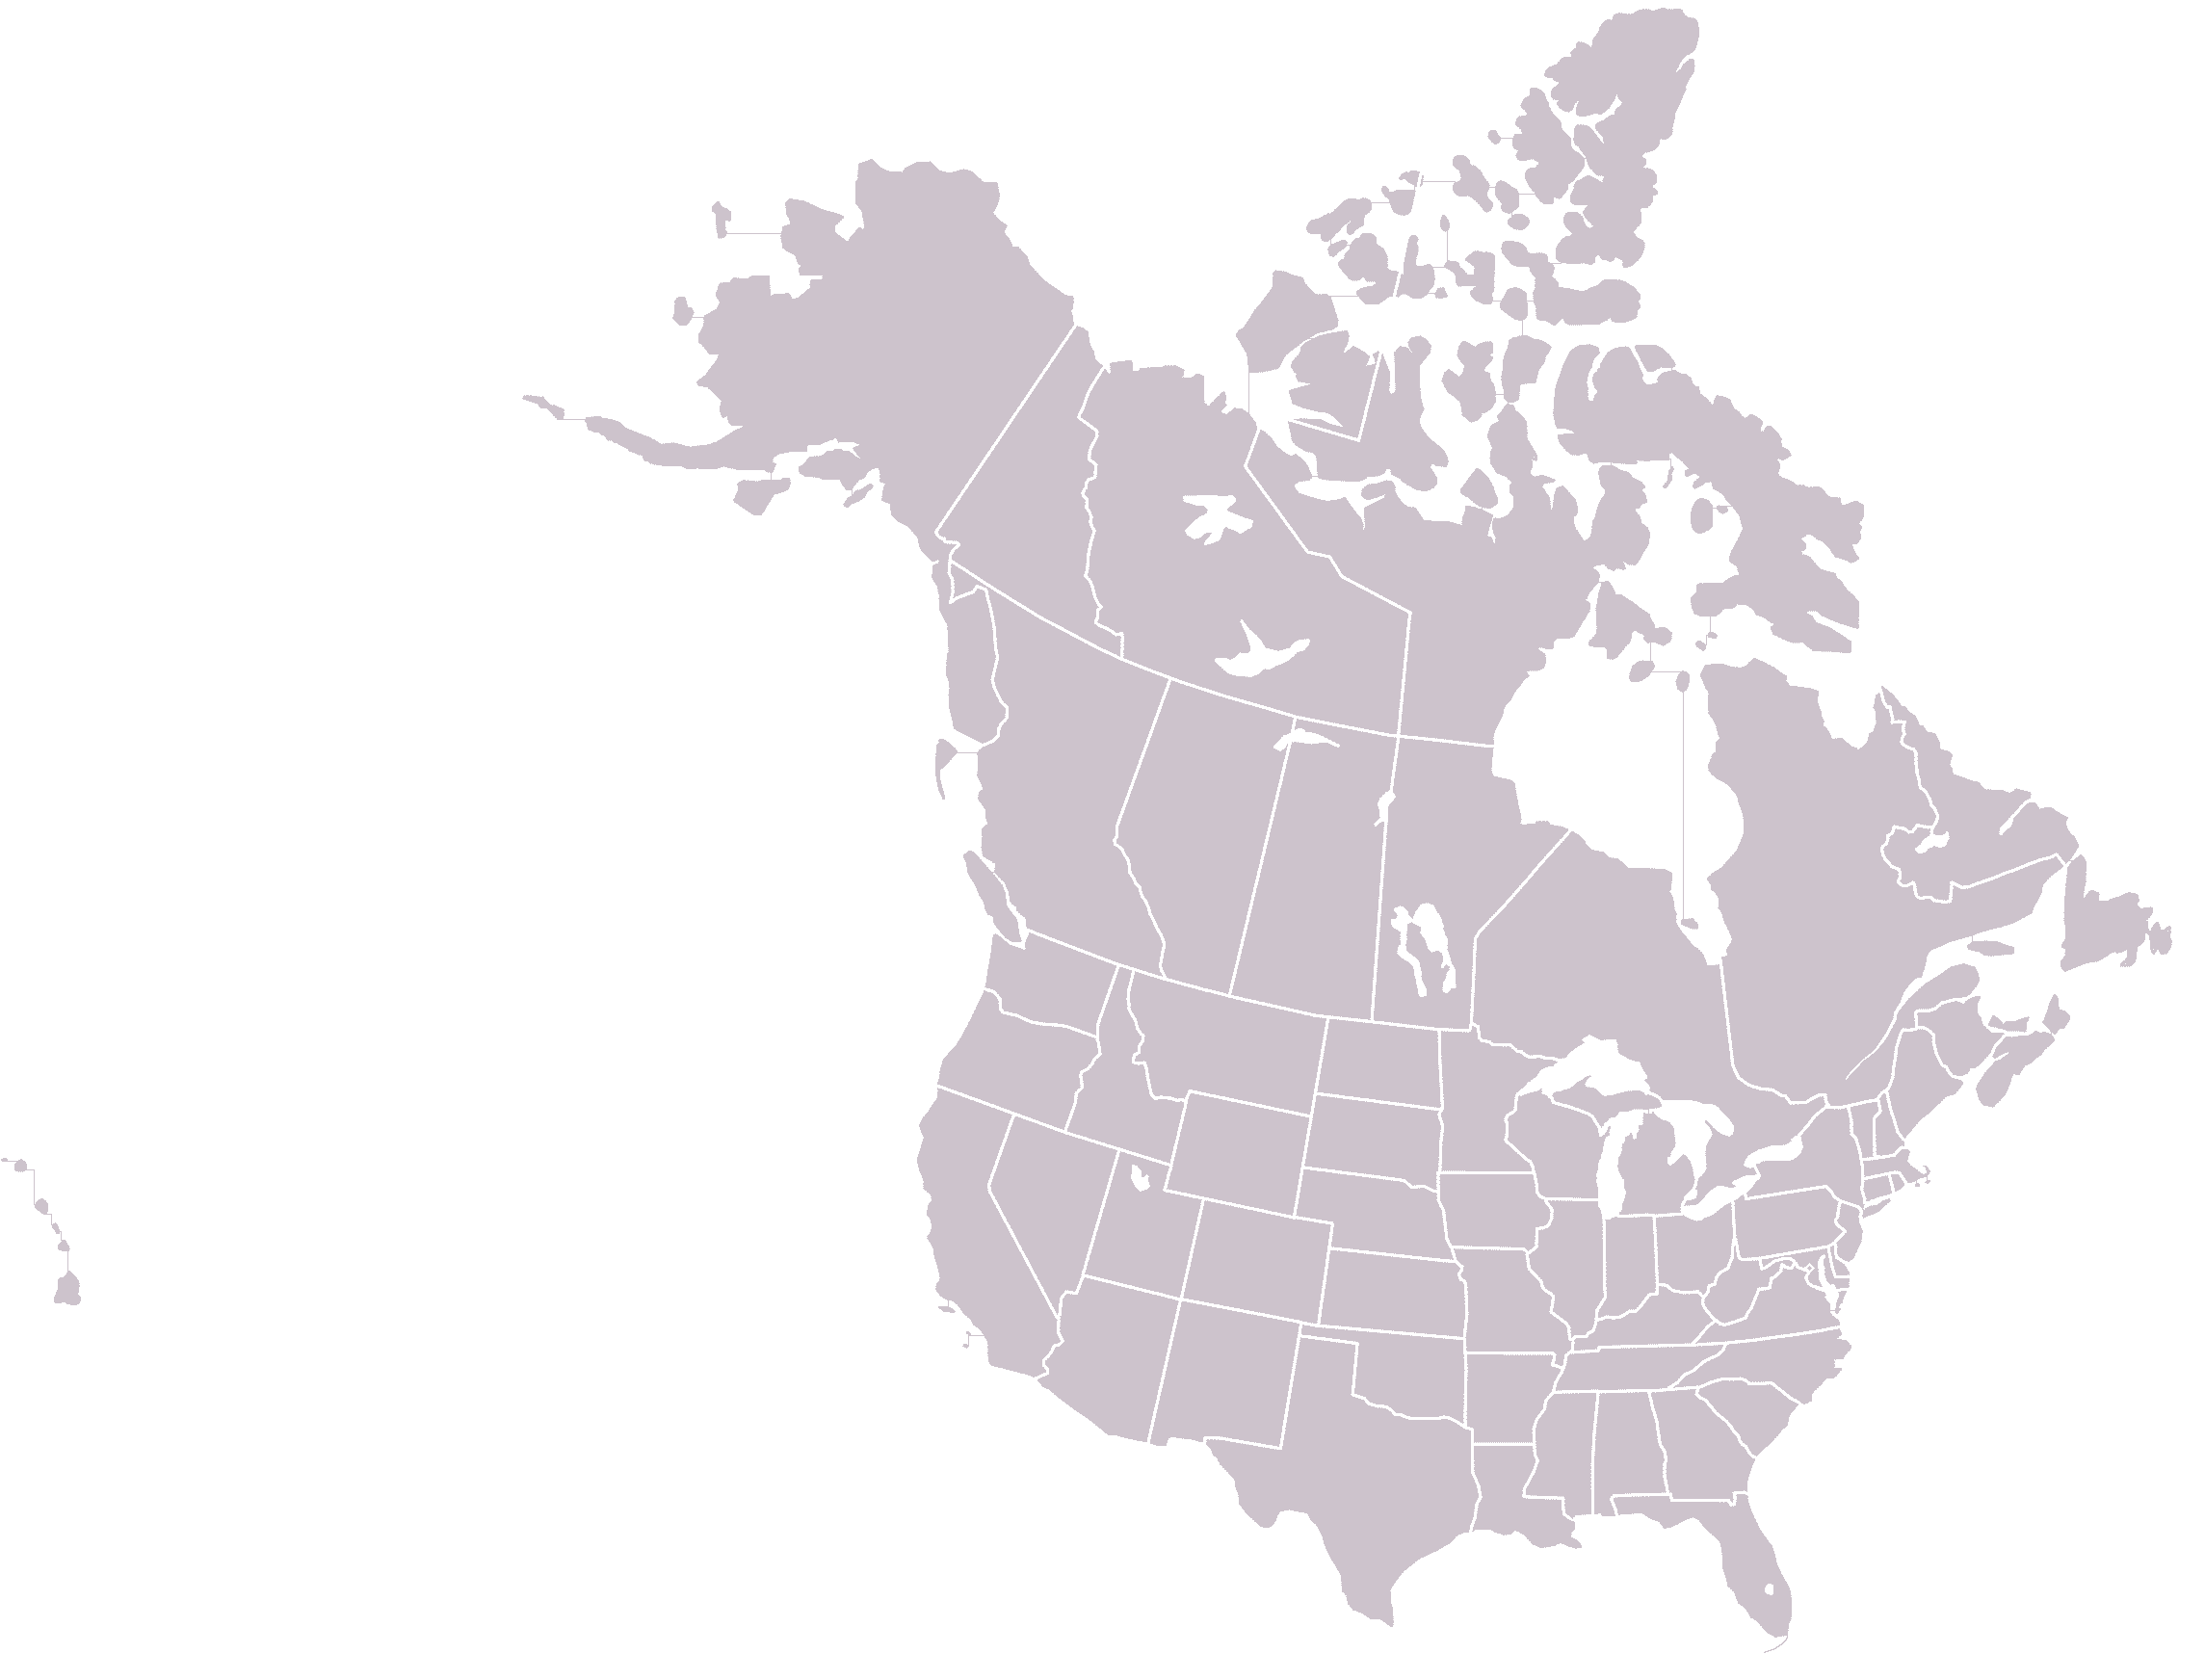 FileBlankMapUSAstatesCanadaprovincespng Wikimedia Commons - Map of canada and usa